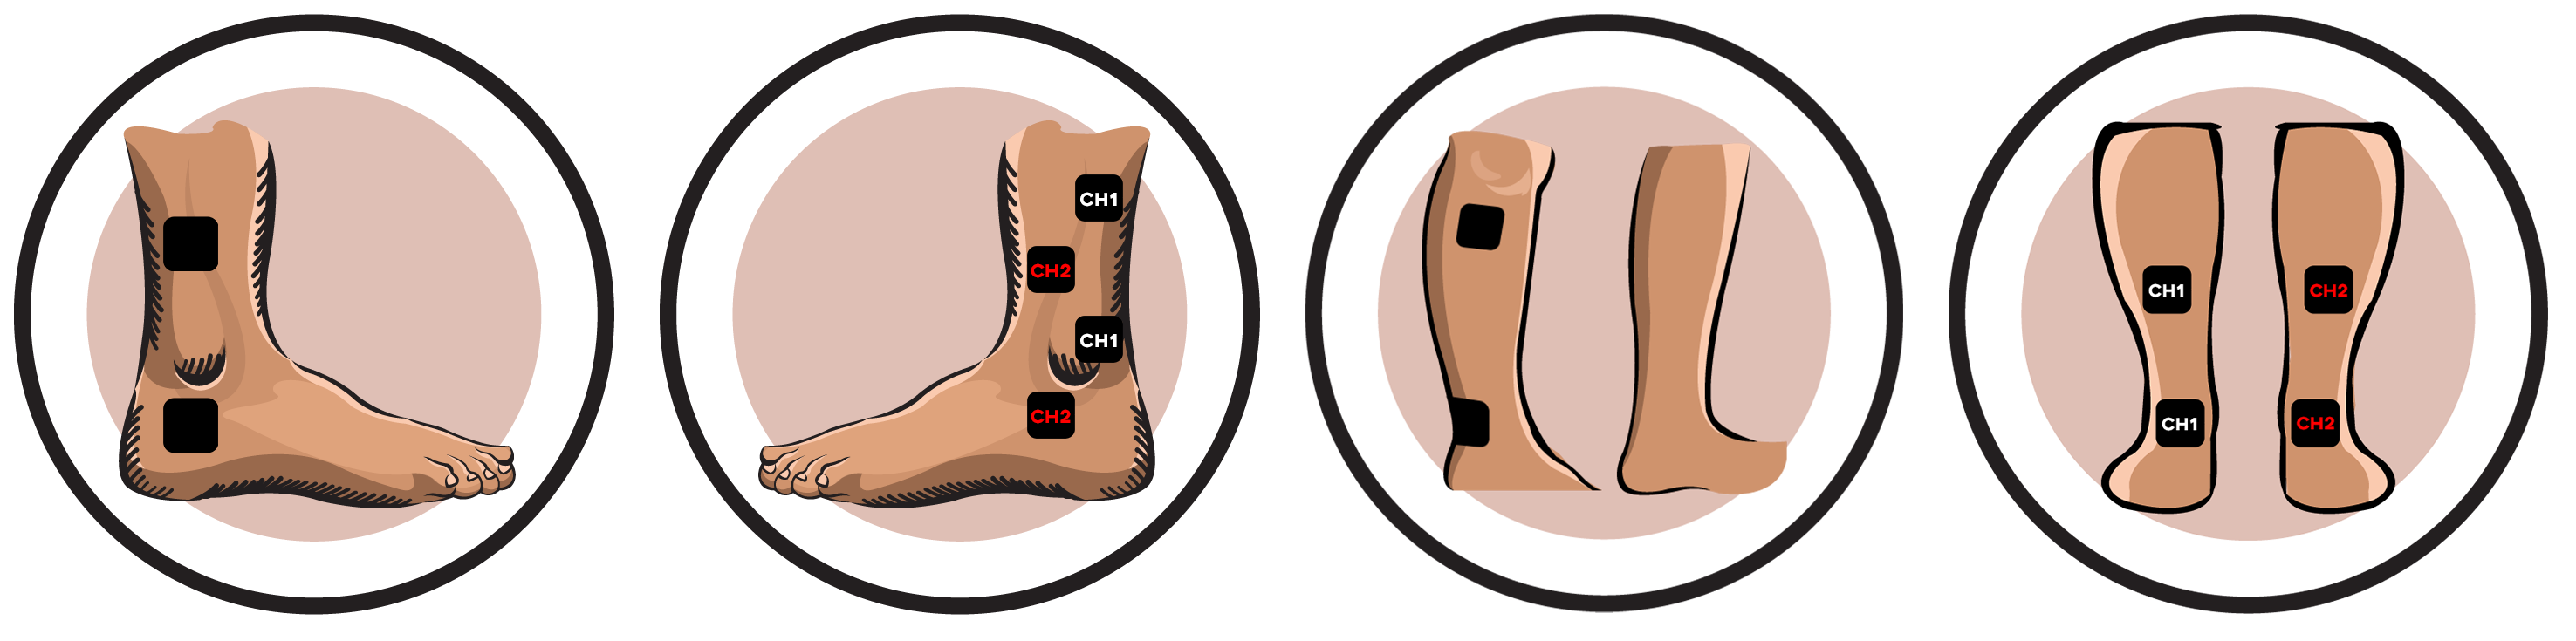 Electrode pad placement . Legs clipart ankle joint